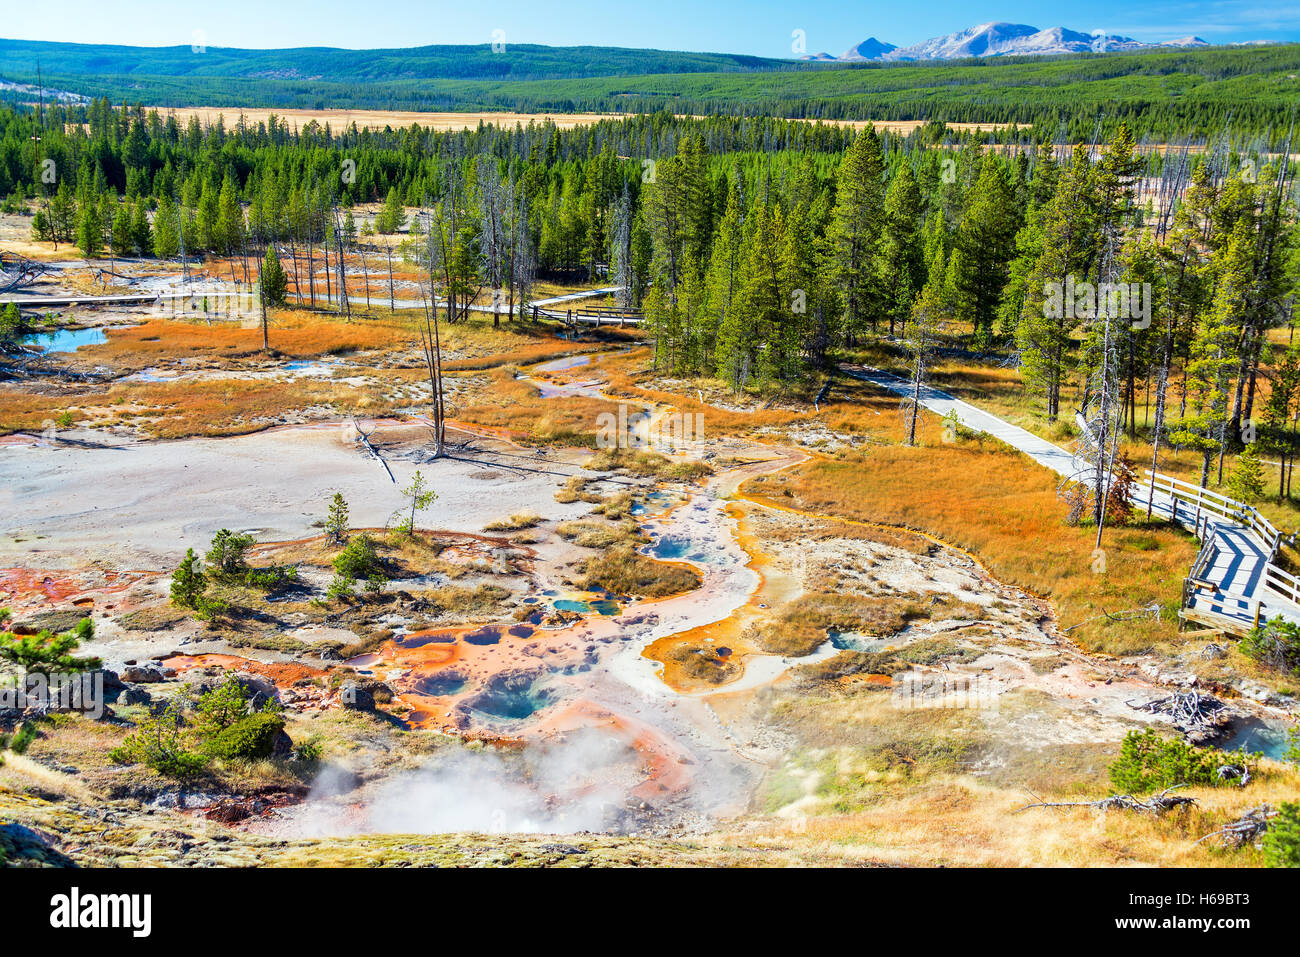 Landscape view of Norris Geyser Basin in Yellowstone National Park - Stock Image